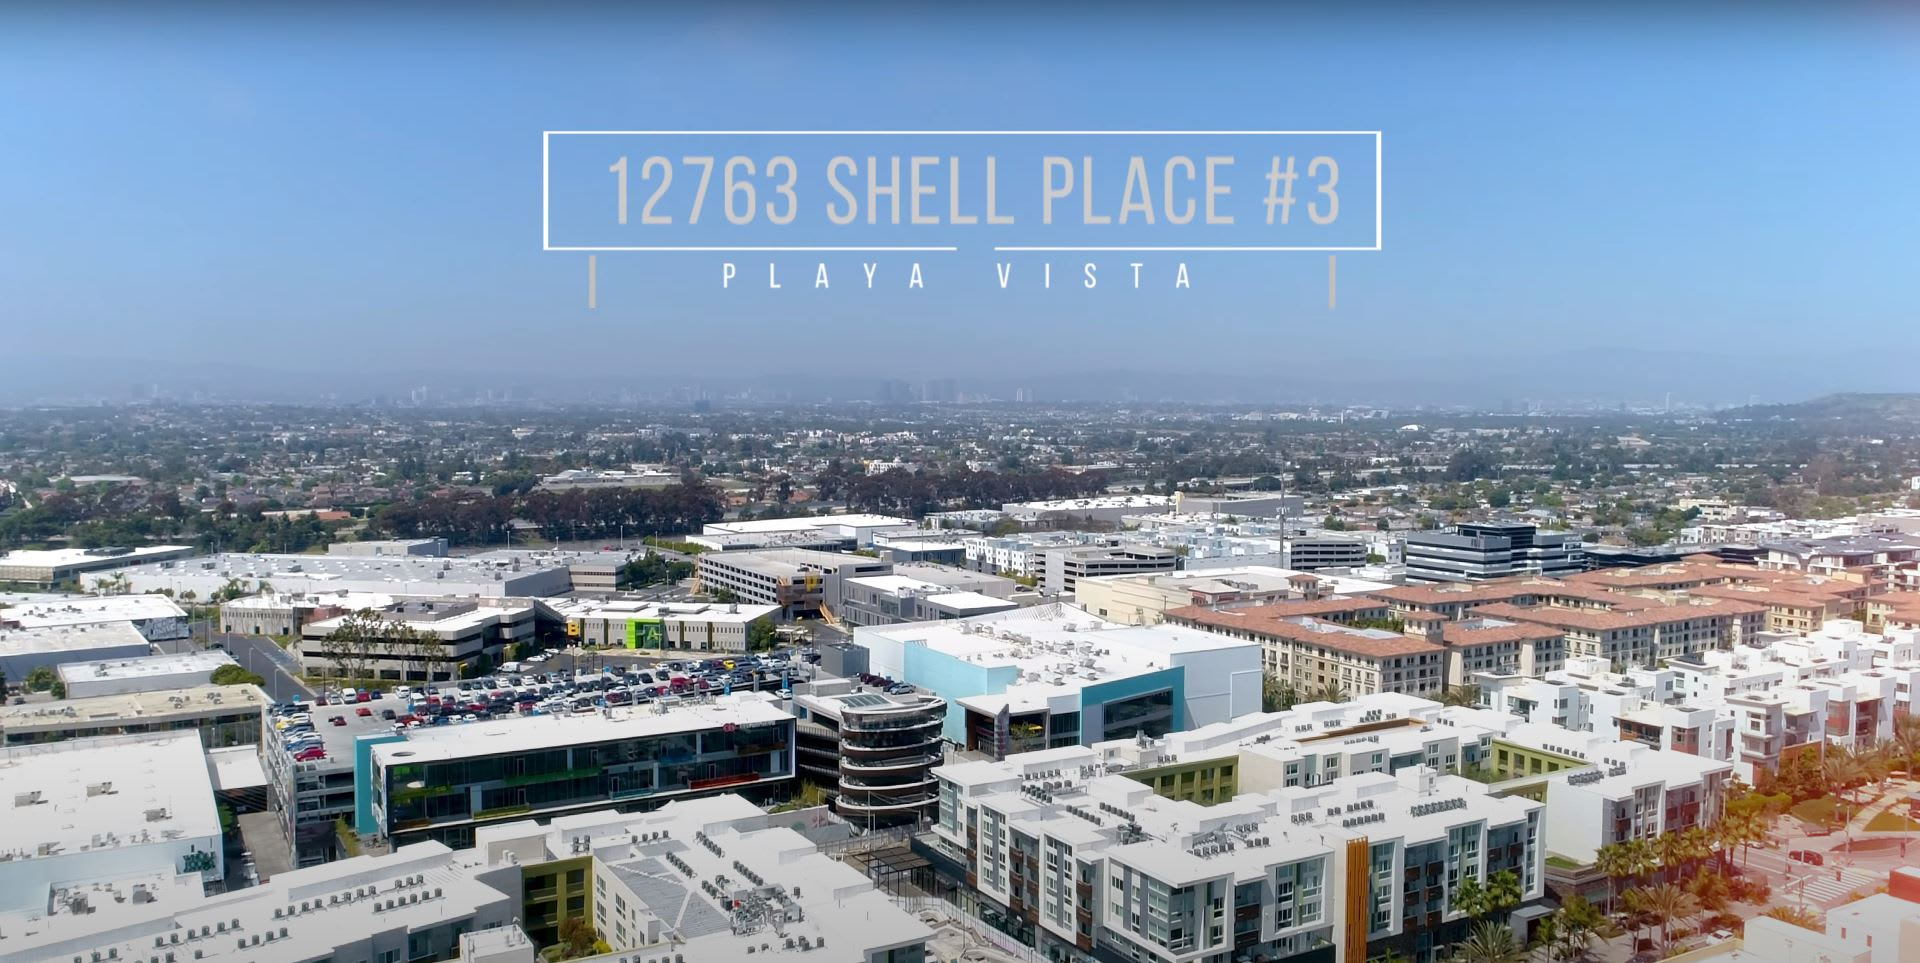 12763 Shell Place #3 | Playa Vista video preview